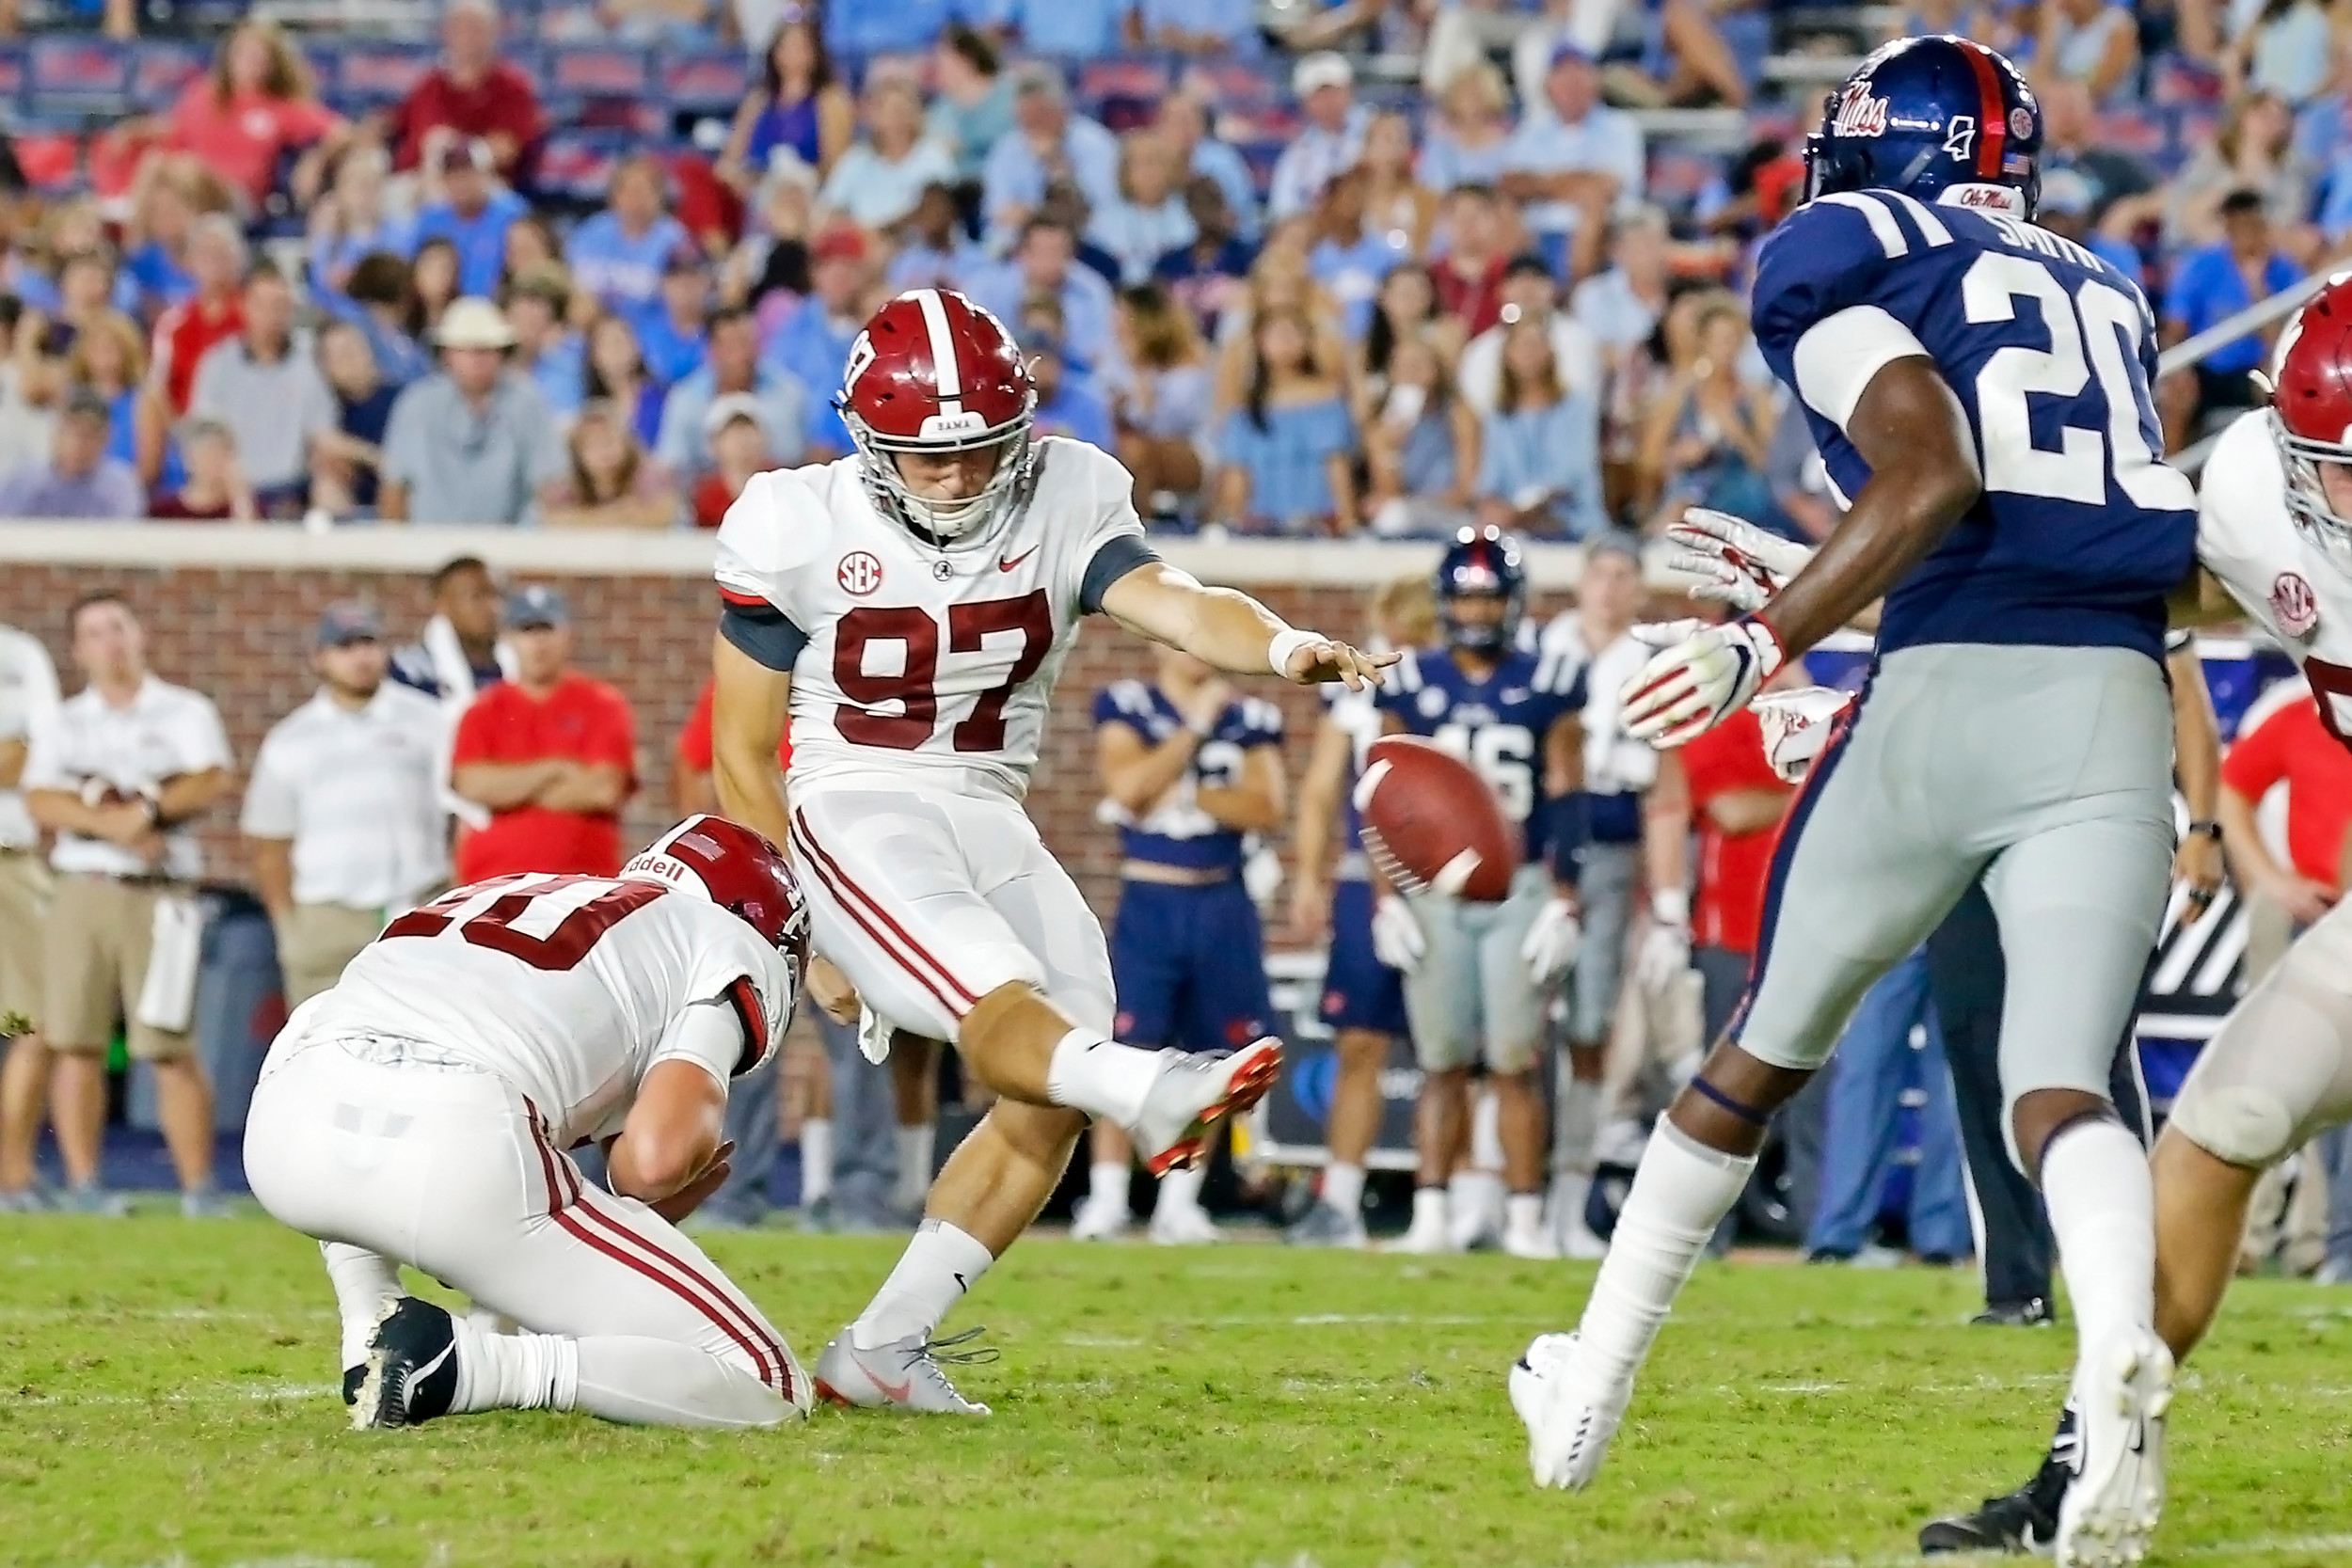 Alabama Crimson Tide place kicker Joseph Bulovas (97) kicks a 43 yard field goal in the 3rd quarter of the game between the University of Alabama and Ole Miss at Vaught-Hemingway Stadium. Jason Clark / Daily Mountain Eagle